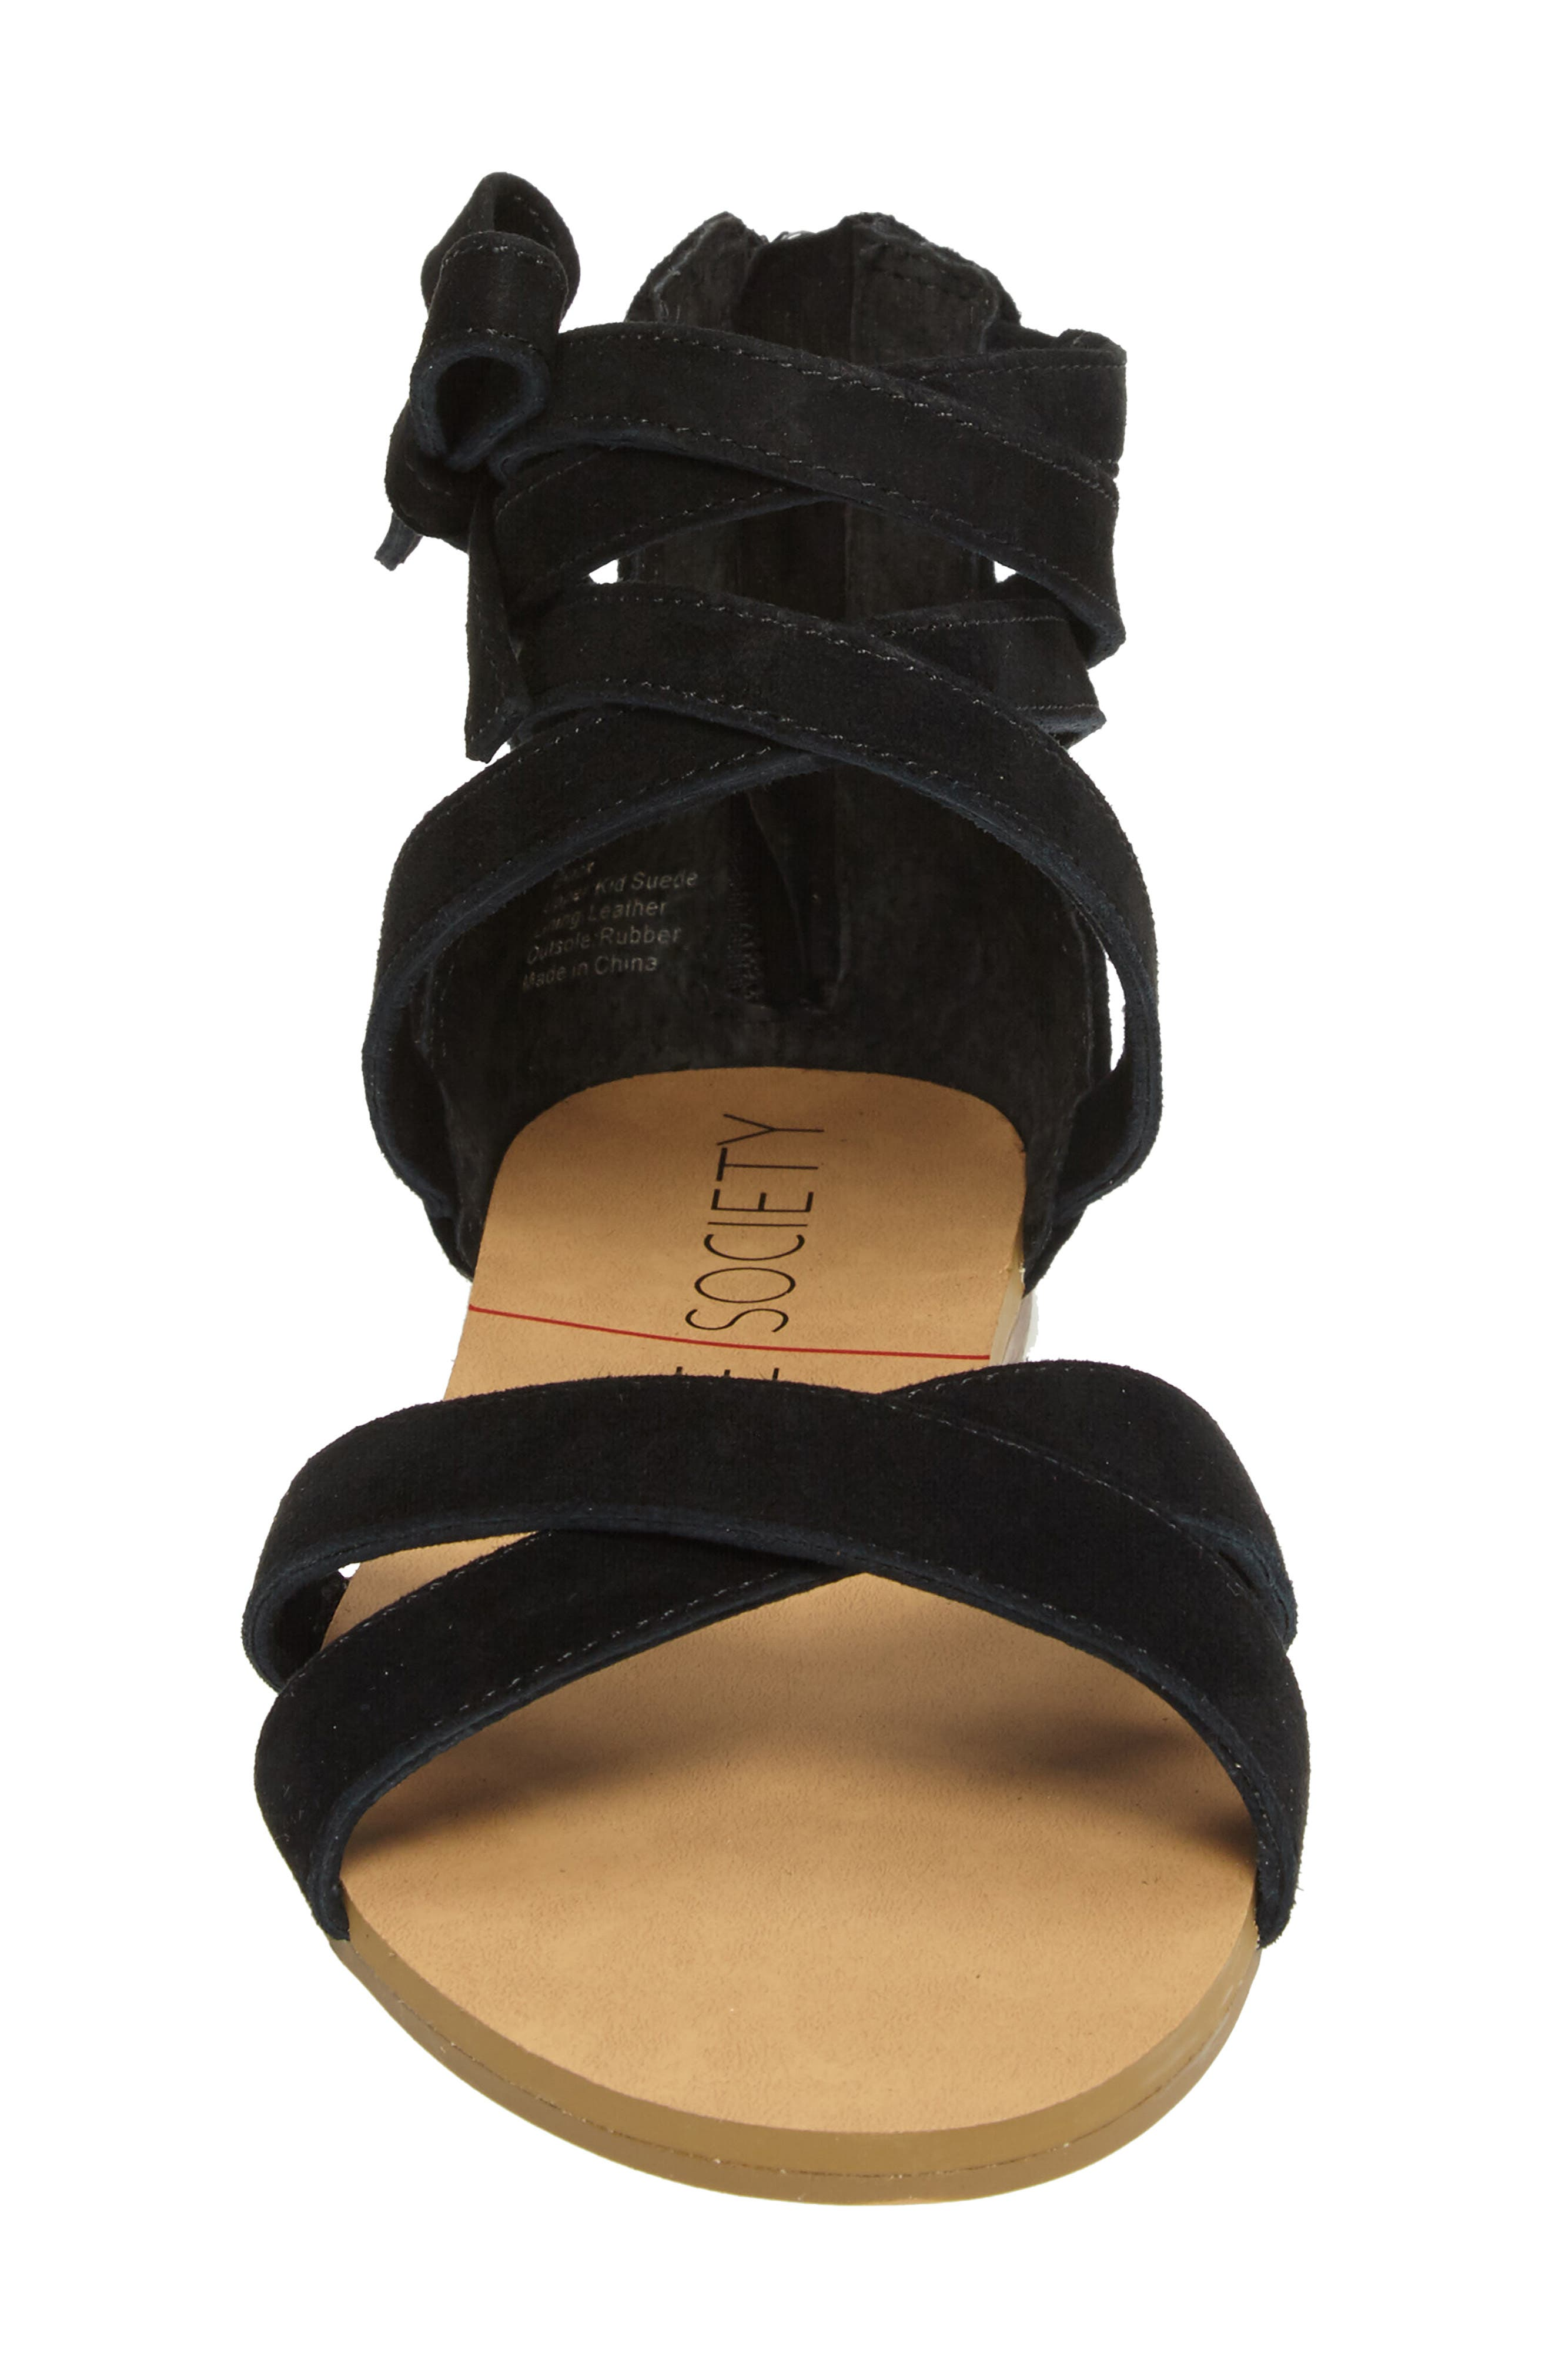 Sana Wraparound Sandal,                             Alternate thumbnail 4, color,                             003